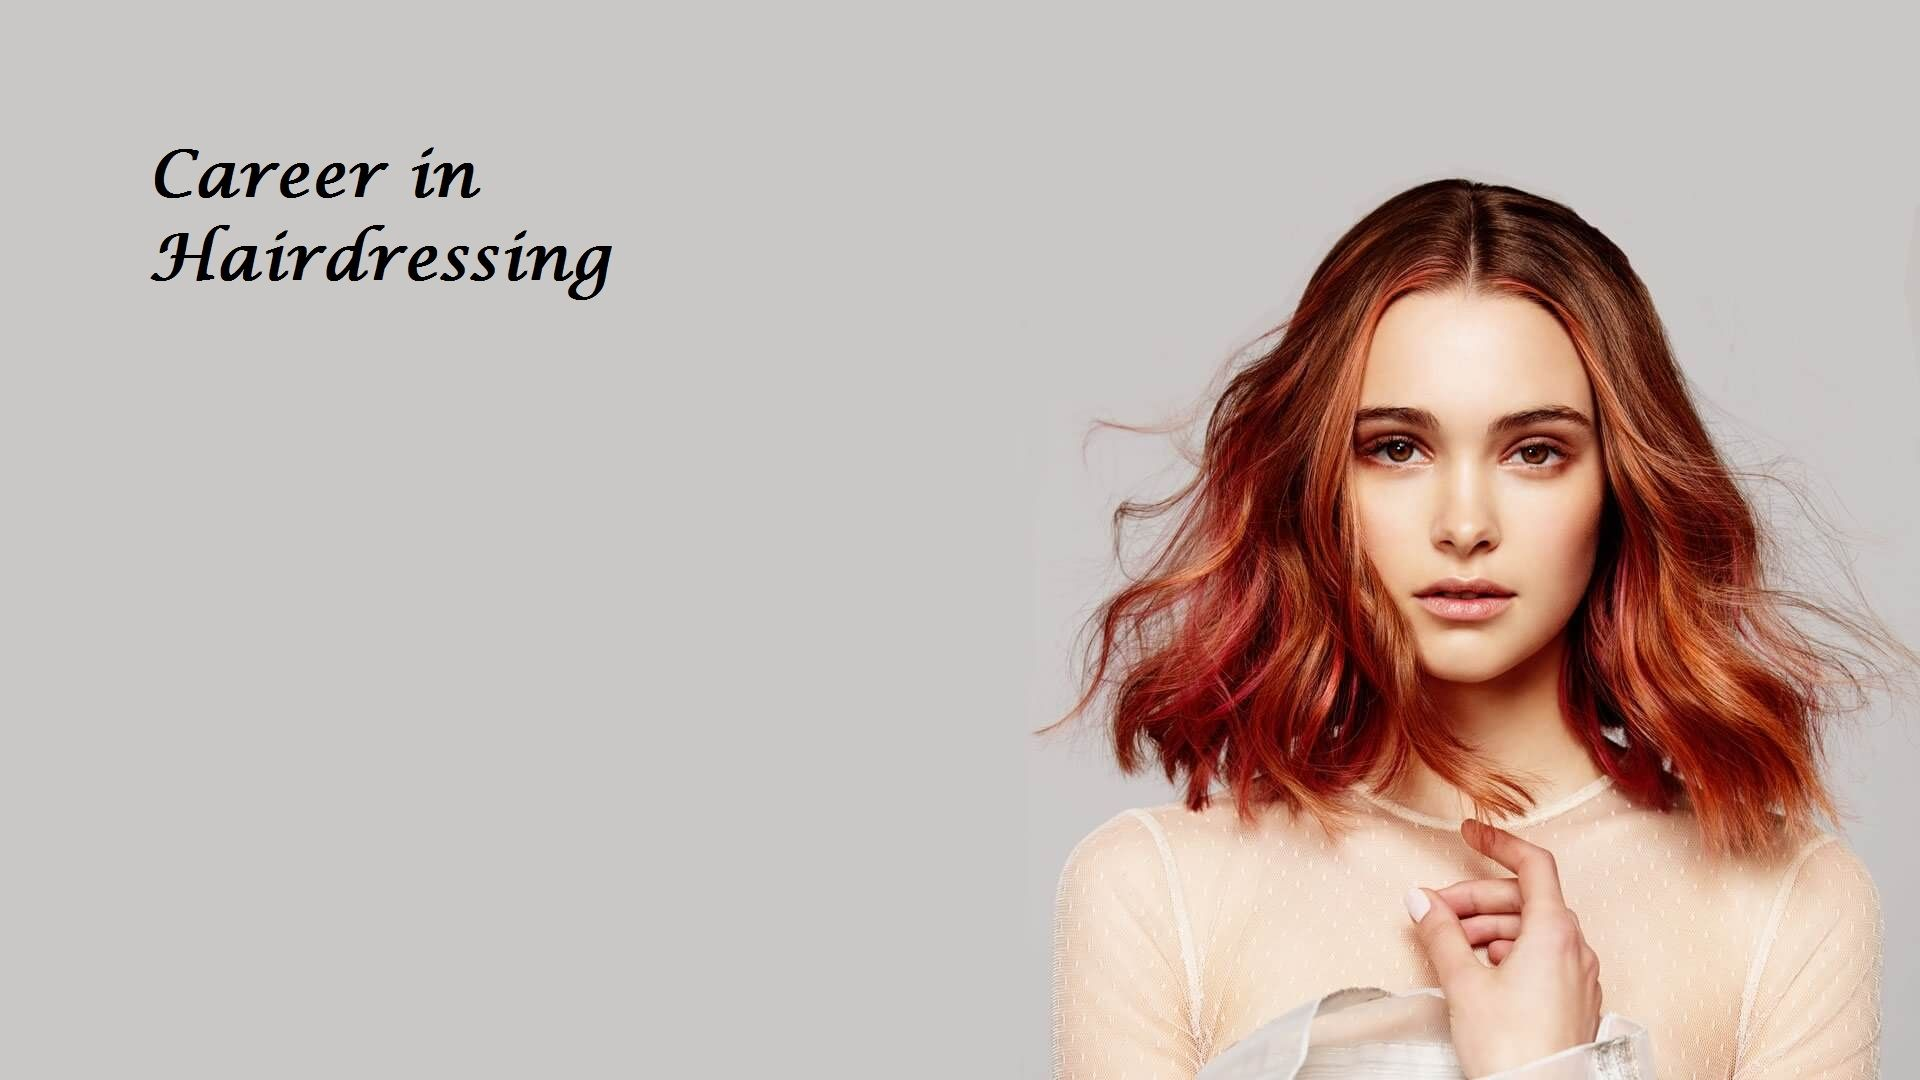 Check Out The Best Professional Hair Stylist Courses In Melbourne In 2020 Hair And Beauty Courses Hairdressing Courses Beauty Courses